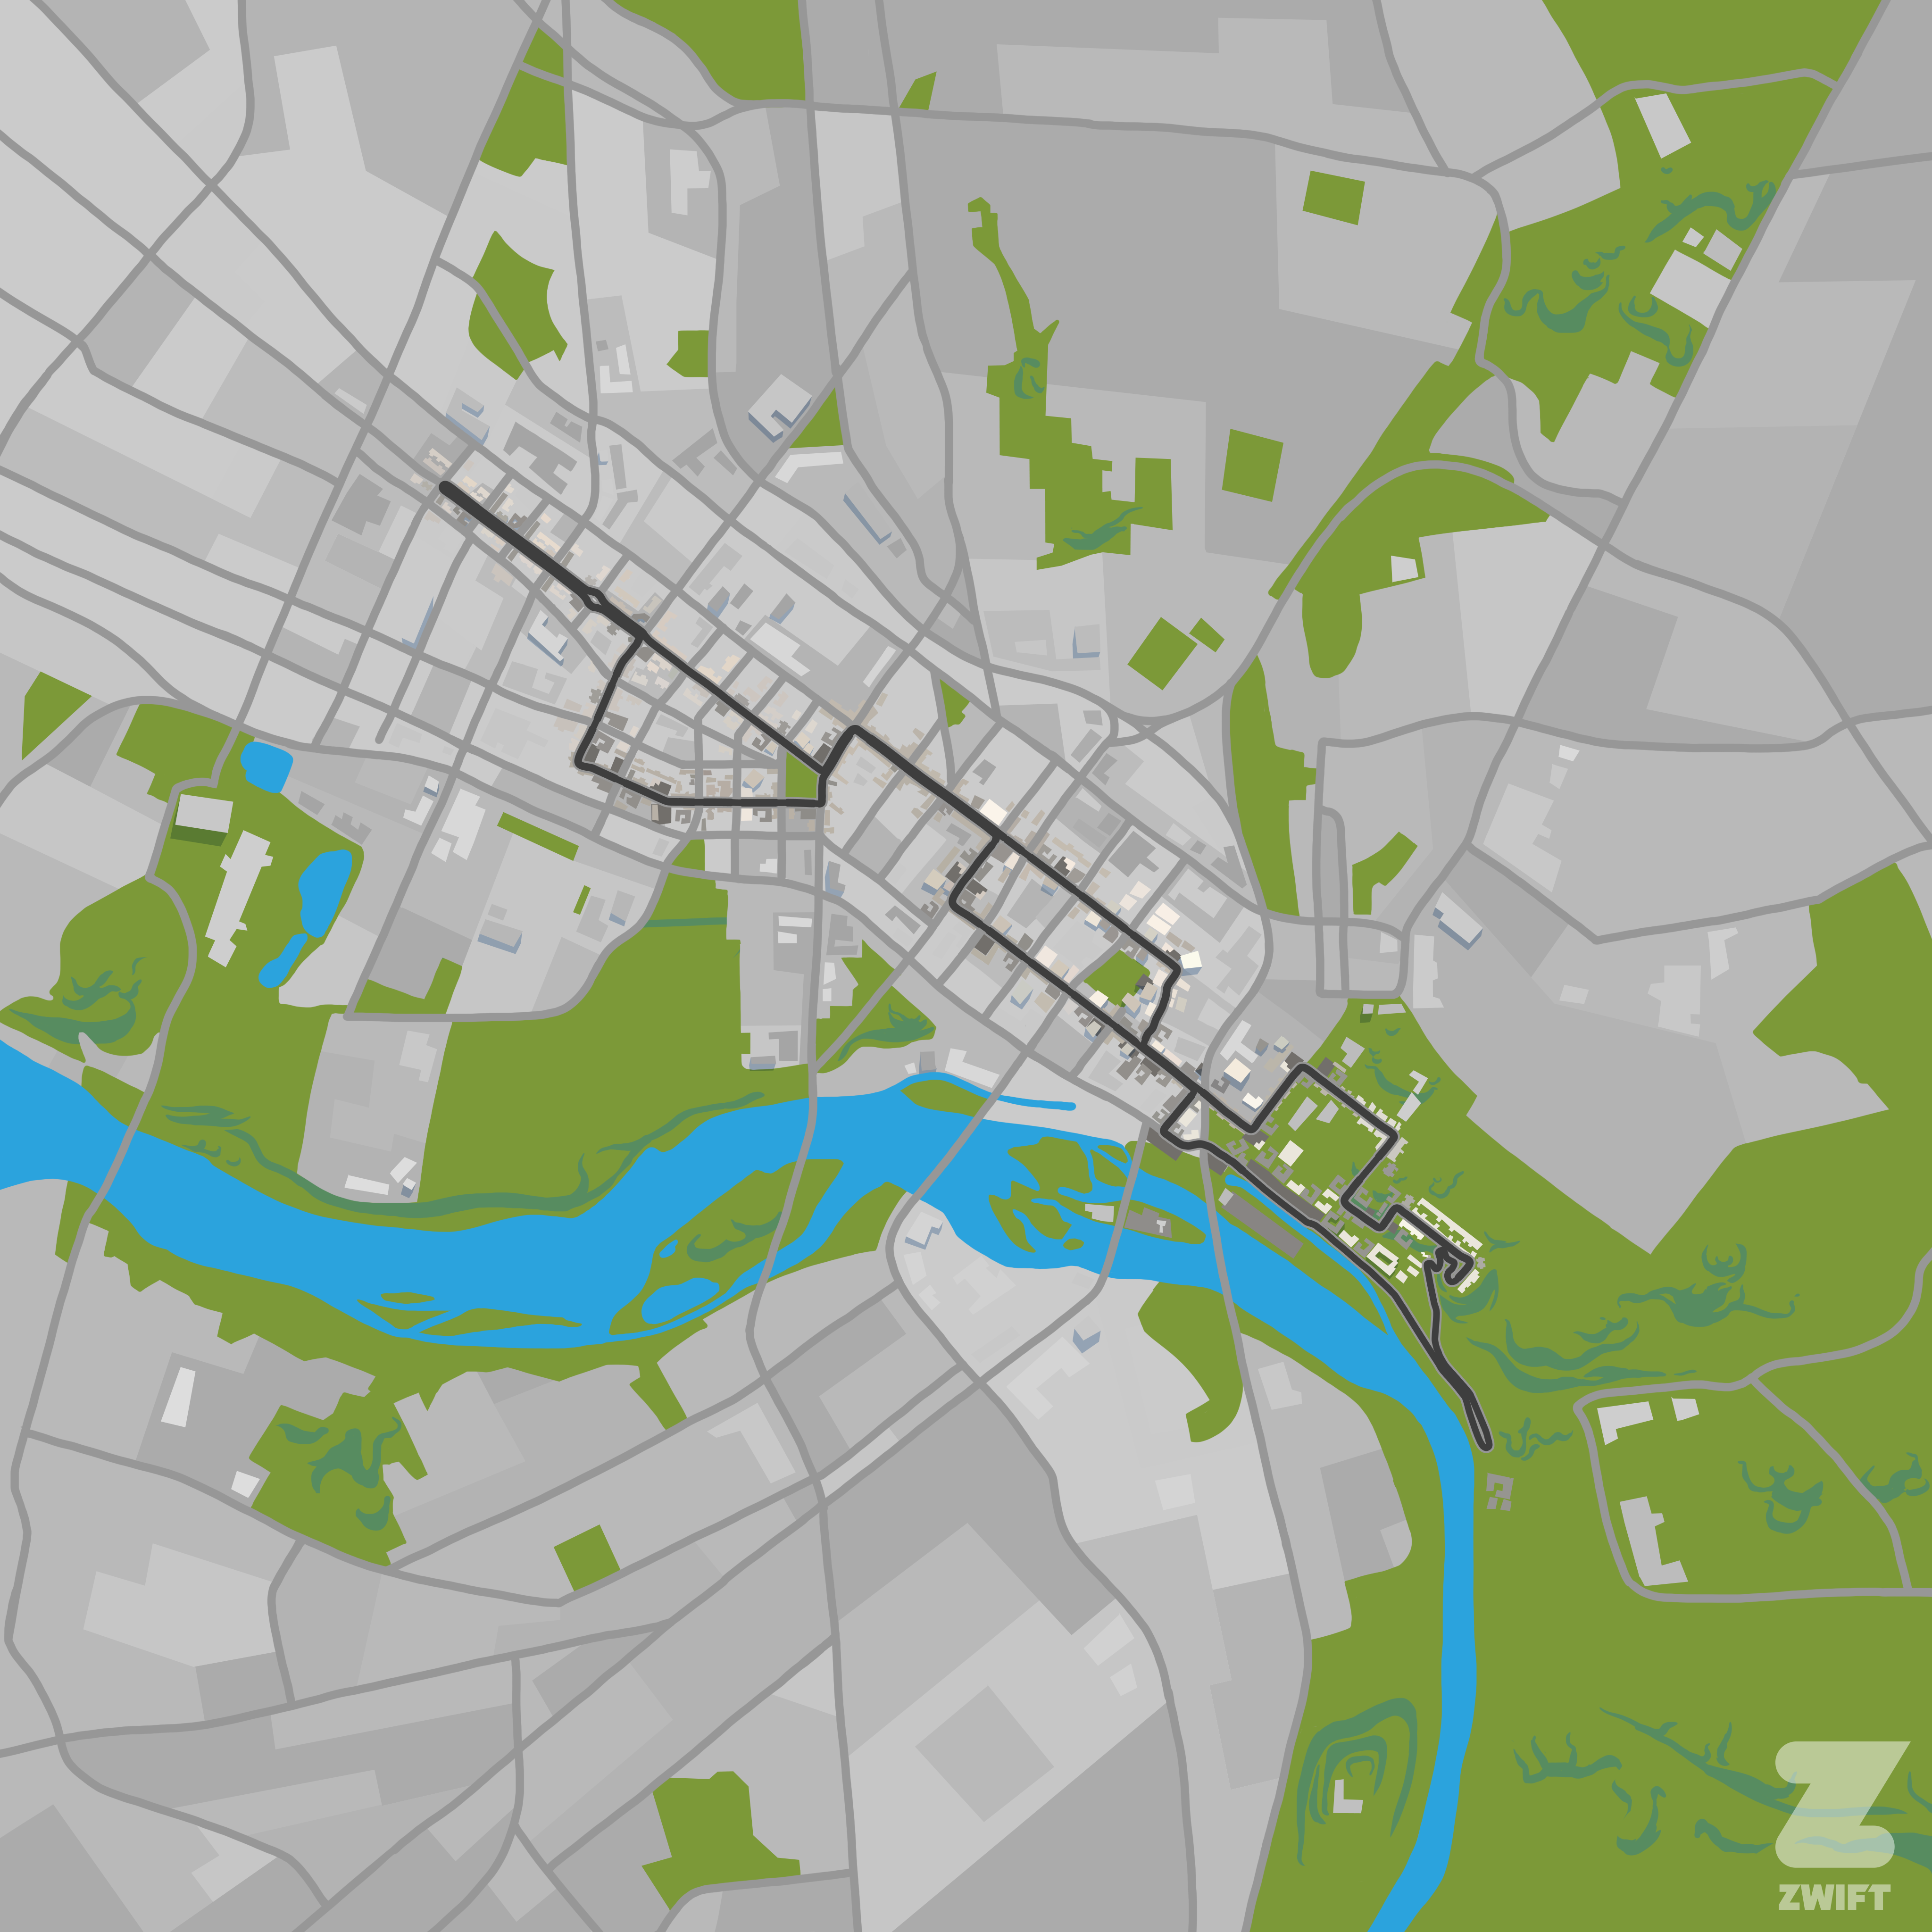 take a look at this web app and it will always show you a map of the current course